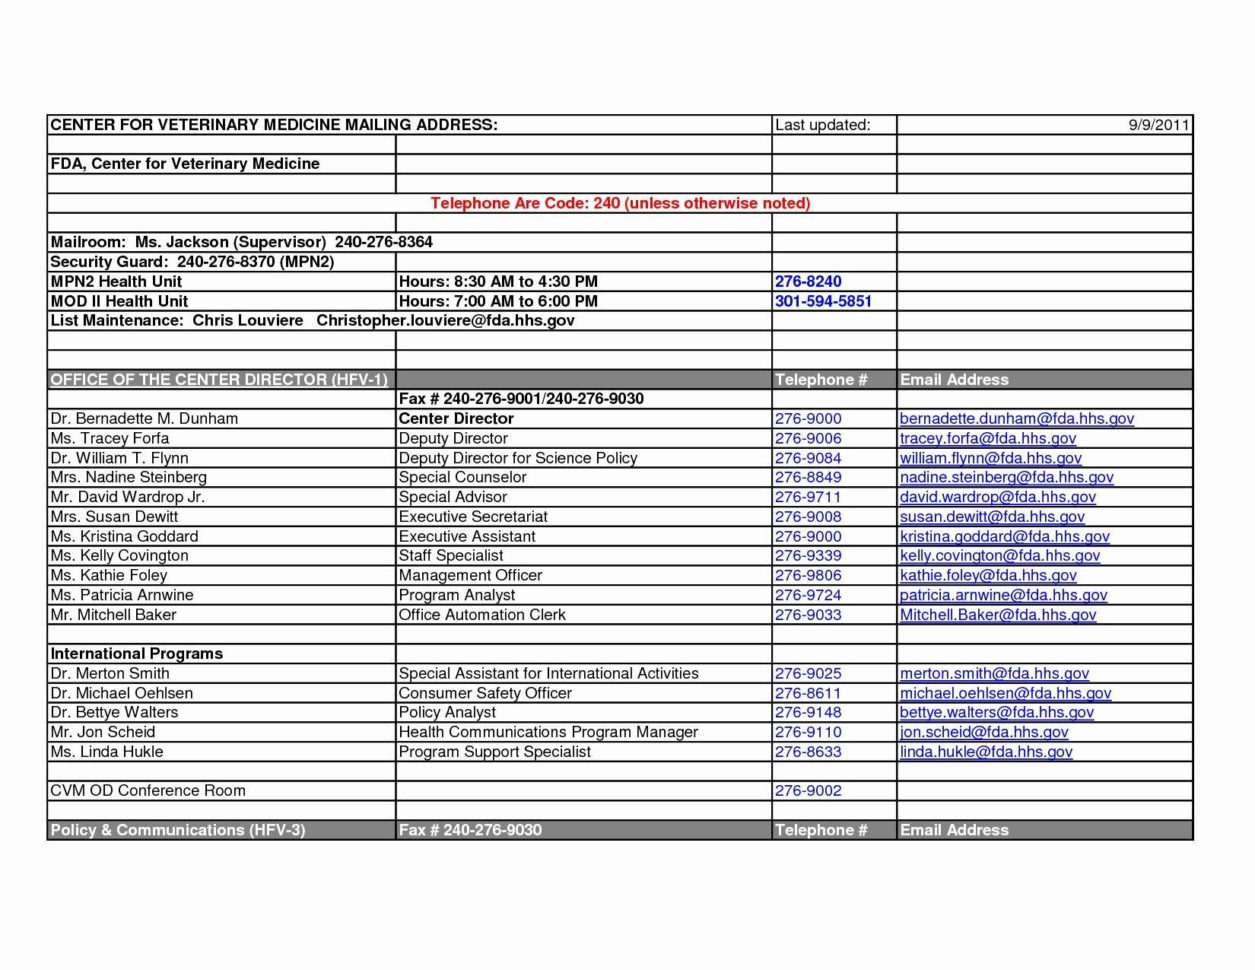 Tax Deduction Spreadsheet Template Excel For Tax Deduction Spreadsheet Template Excel  My Spreadsheet Templates